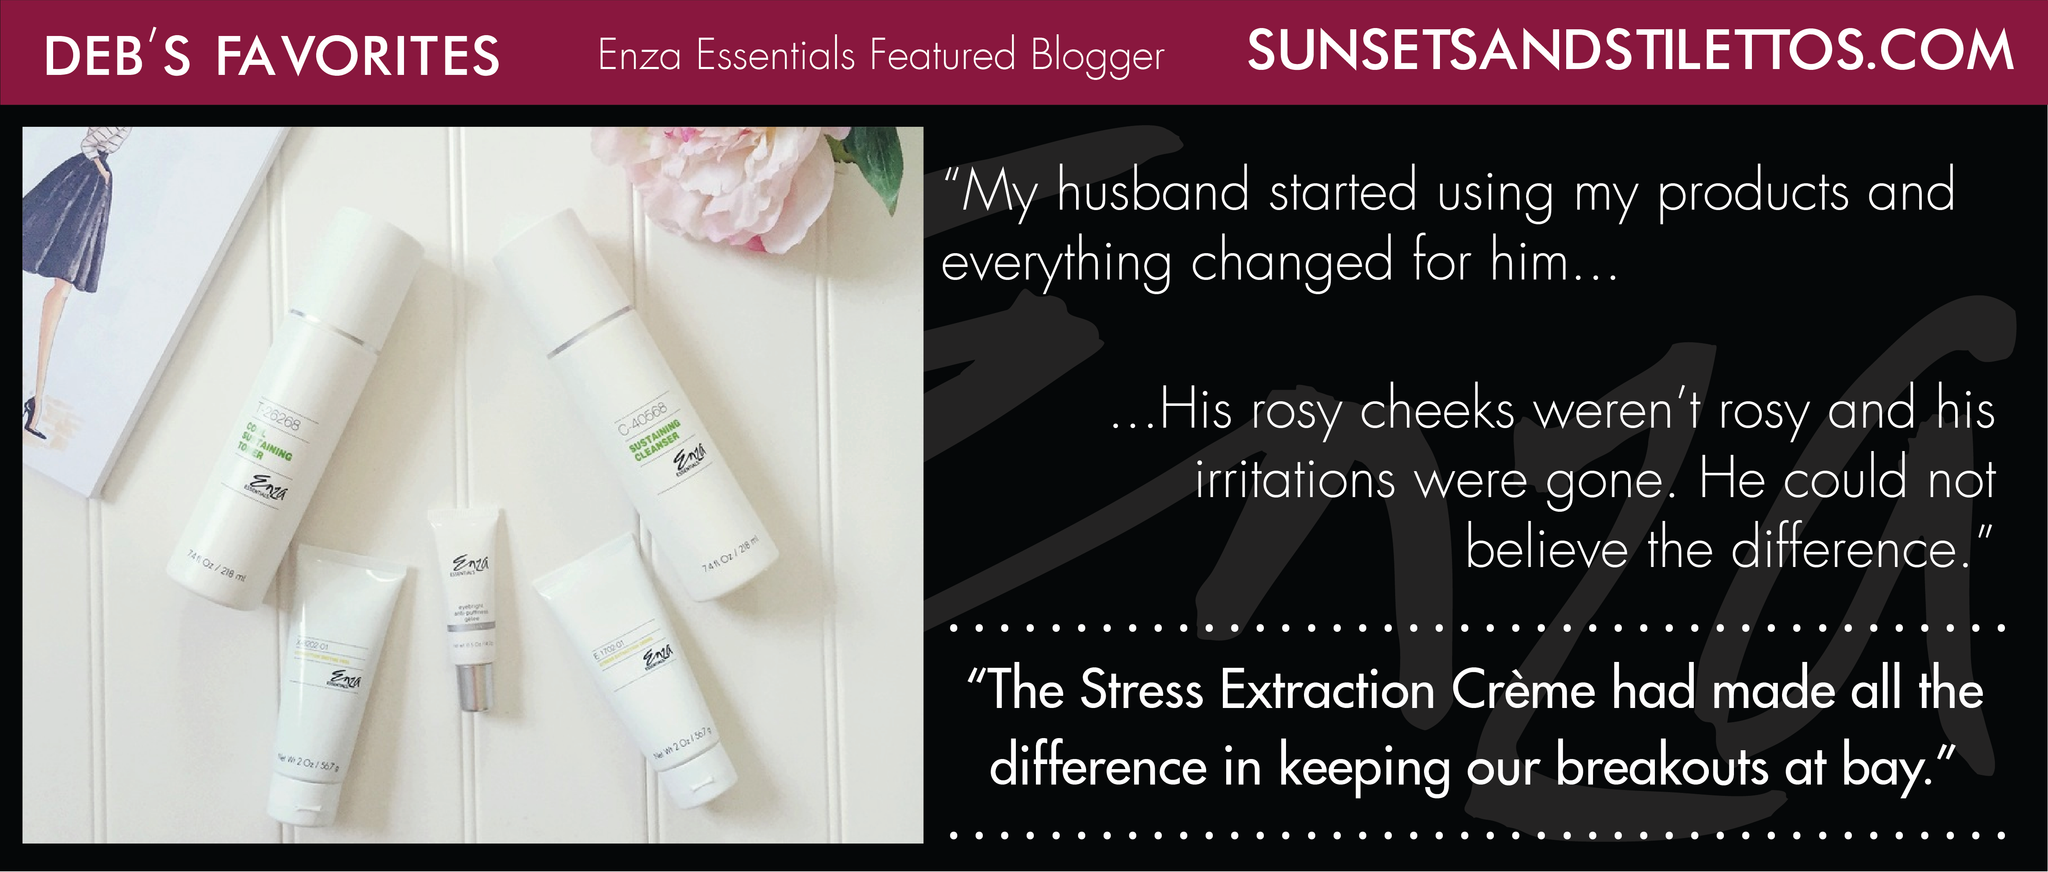 Sunsets & Stilettos Deb Enza Featured Blogger Review